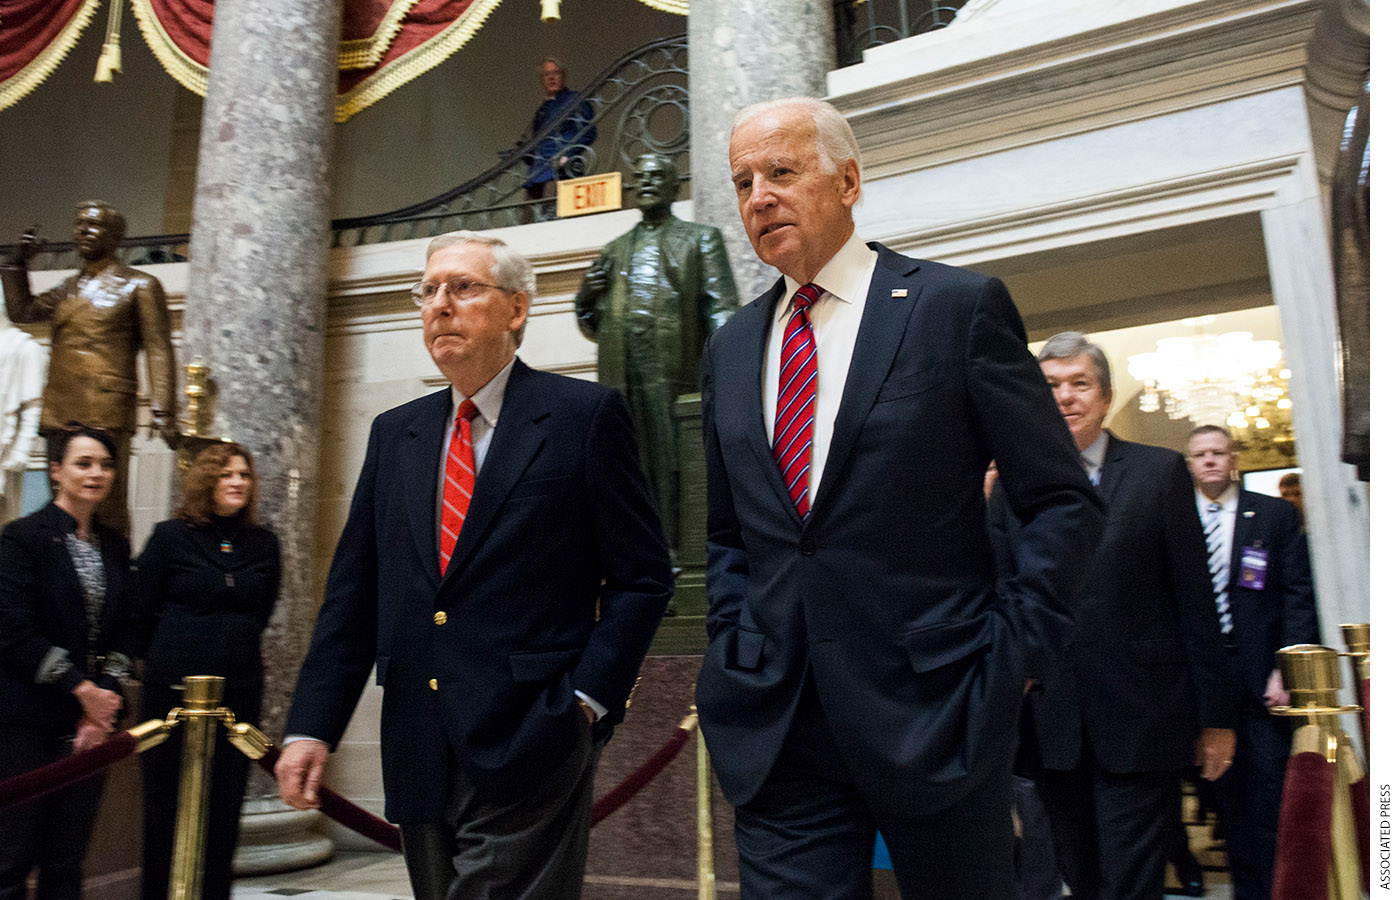 Mitch McConnell and Joe Biden head to a joint congressional session to tally the 2016 electoral college votes on January 6, 2017.